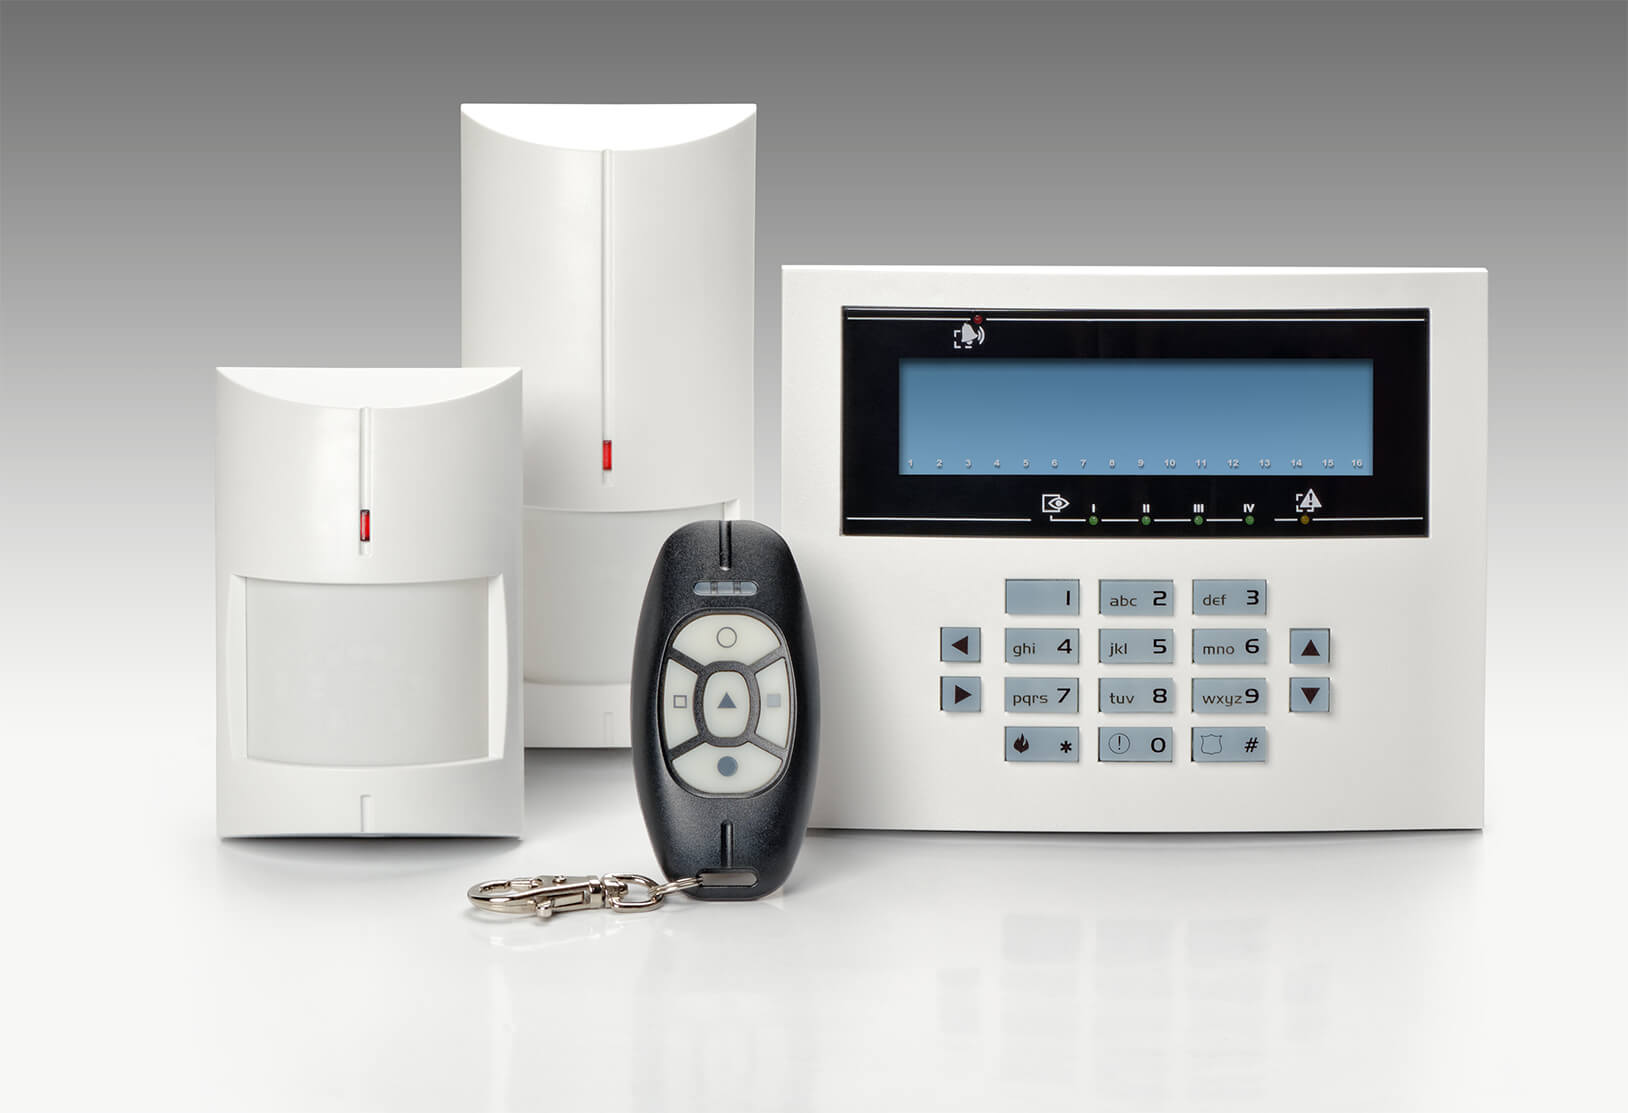 Commercial Burglar Alarms For Business in Chiswick W6  - Local Chiswick W6 burglar alarm company.Call 02078872244 - Dedicated to Safety & Security. Companies, shops and homes ..